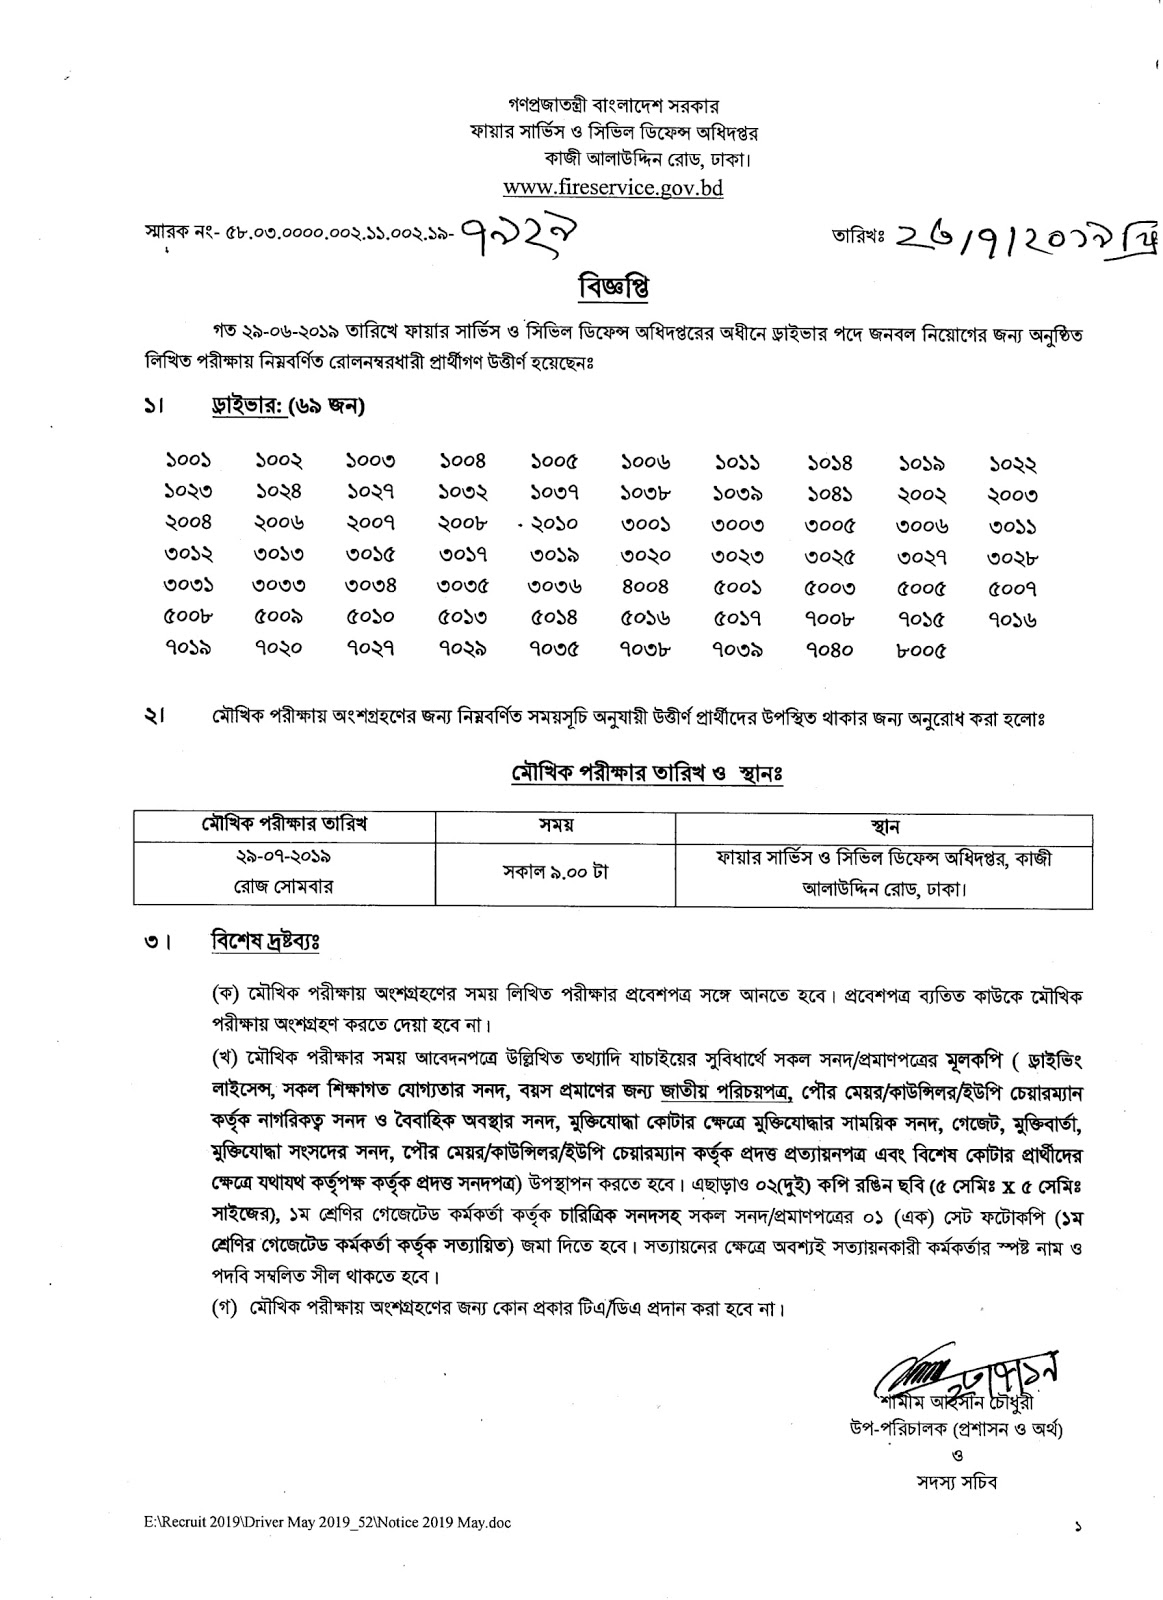 Bangladesh Fire Service Job Result 2019